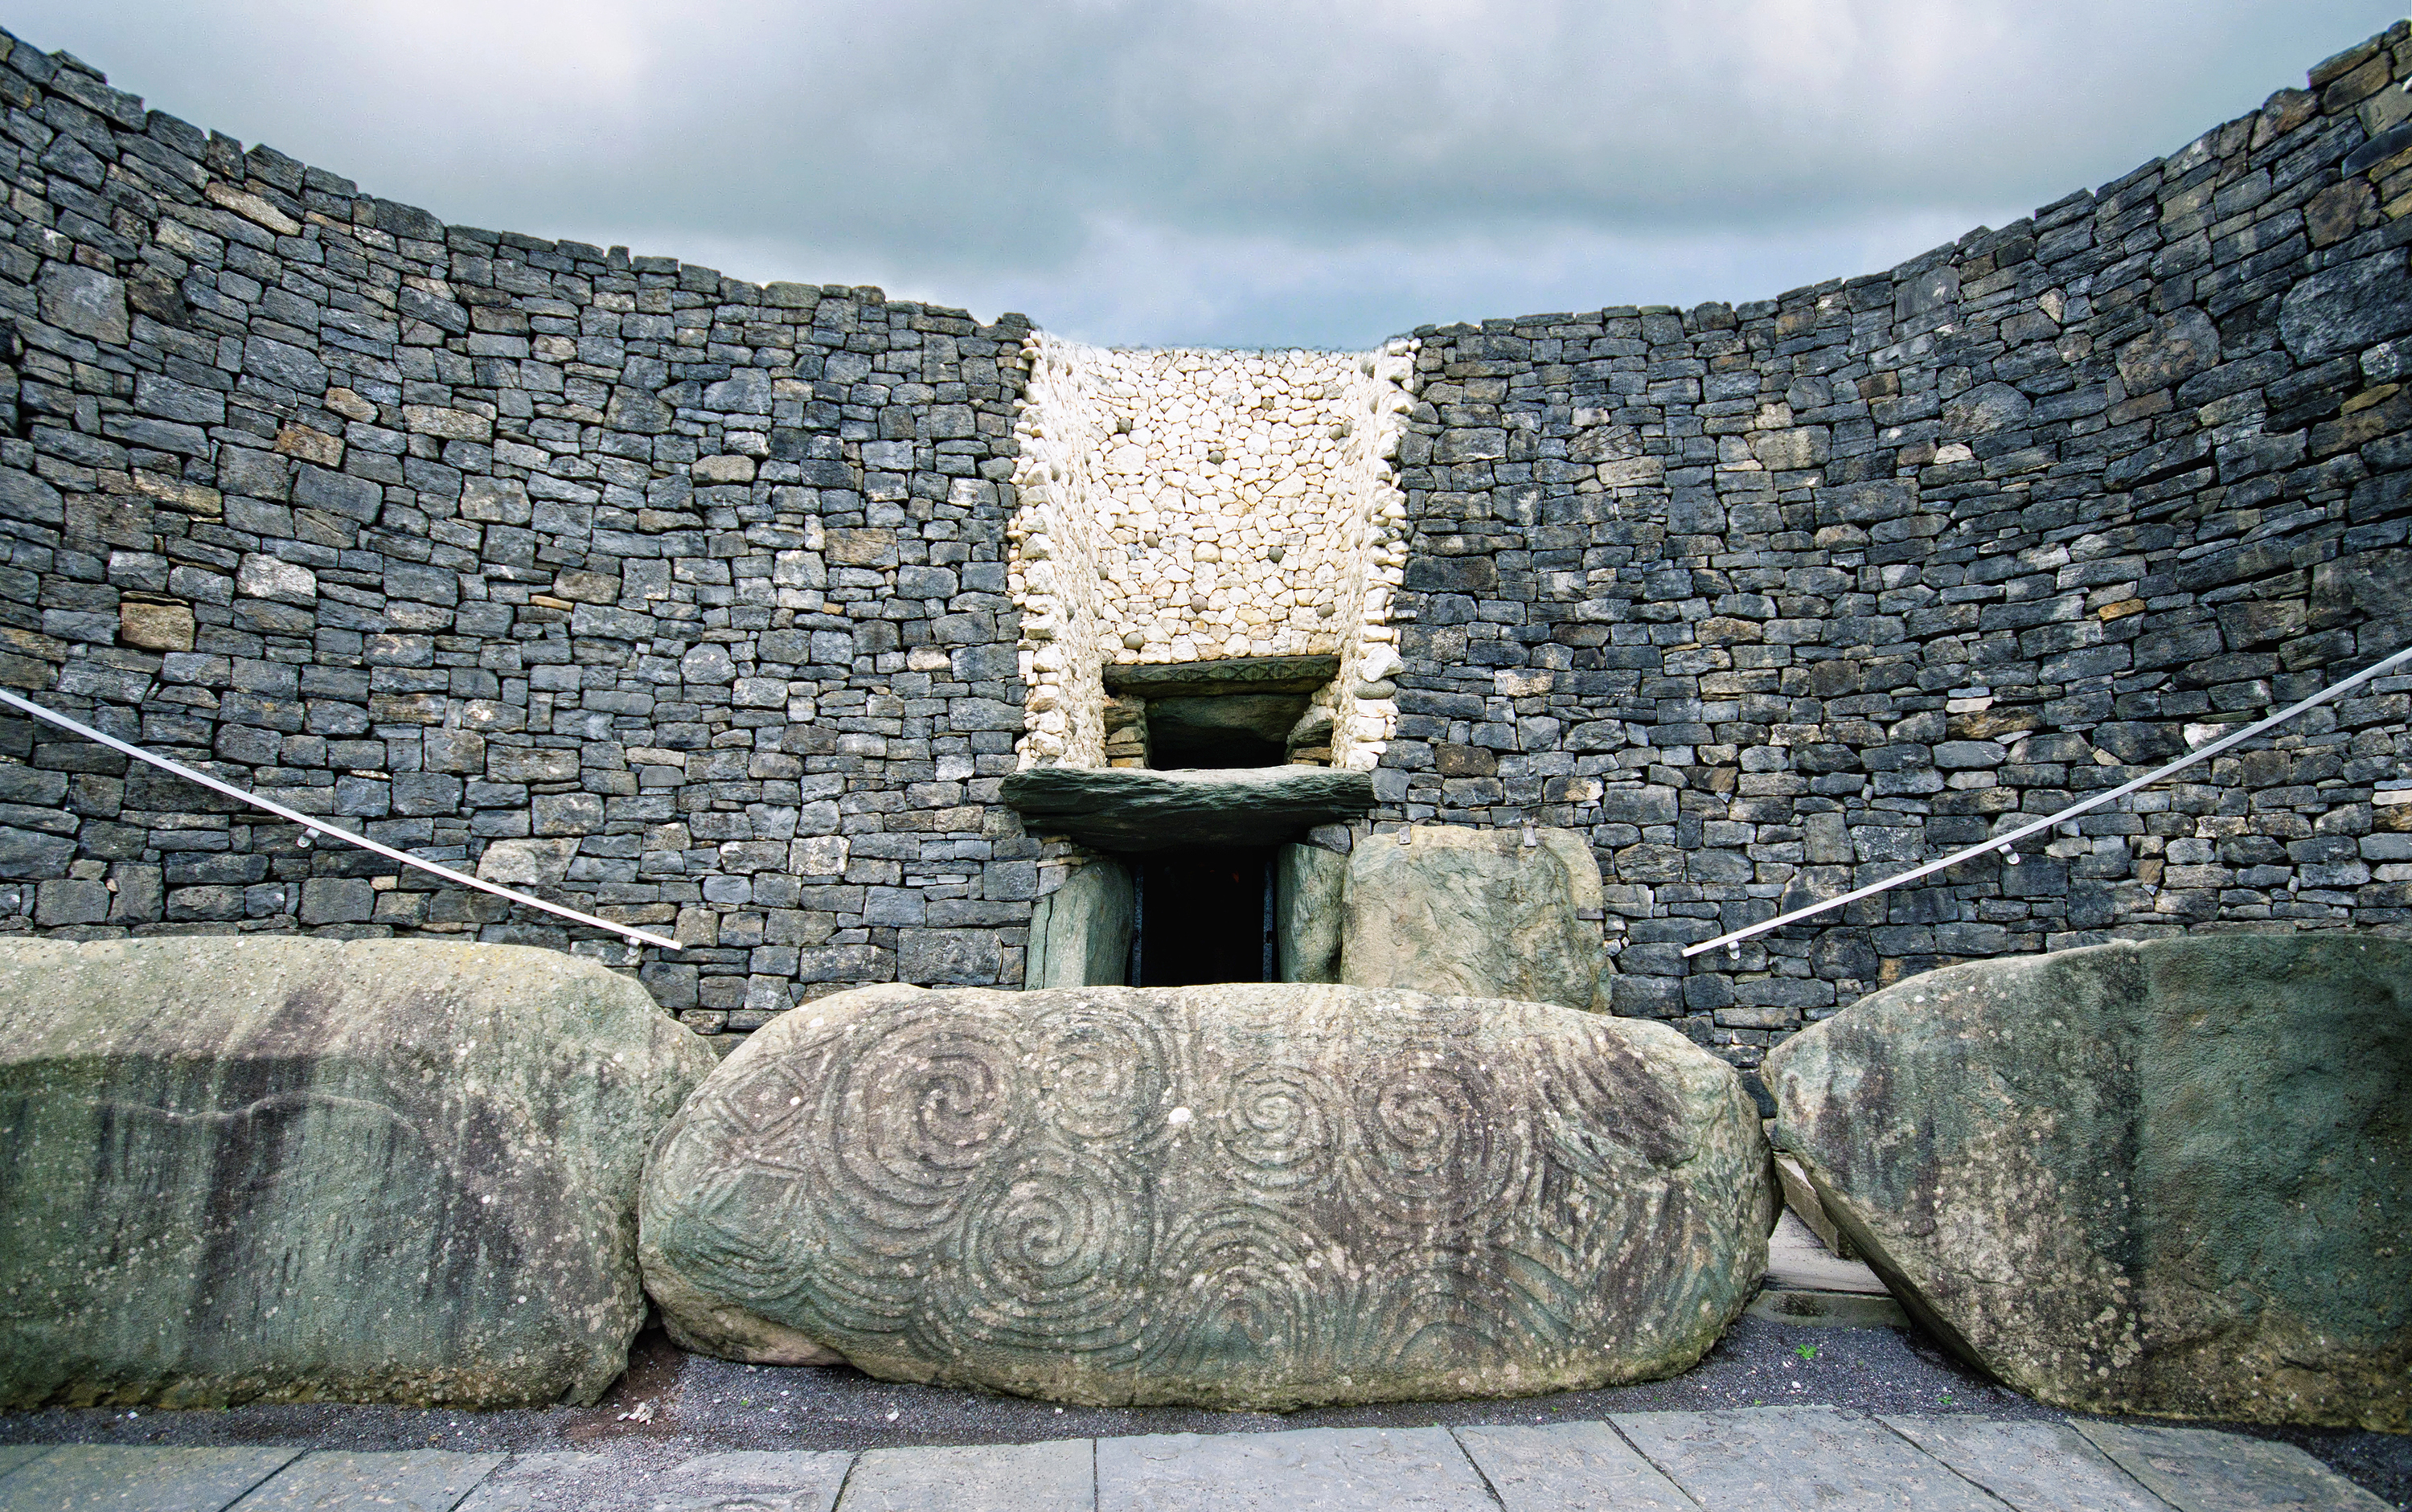 The stone at the entrance to Newgrange showing the megalithic artwork in detail. (Credit: Michelle McMahon/Getty Images)